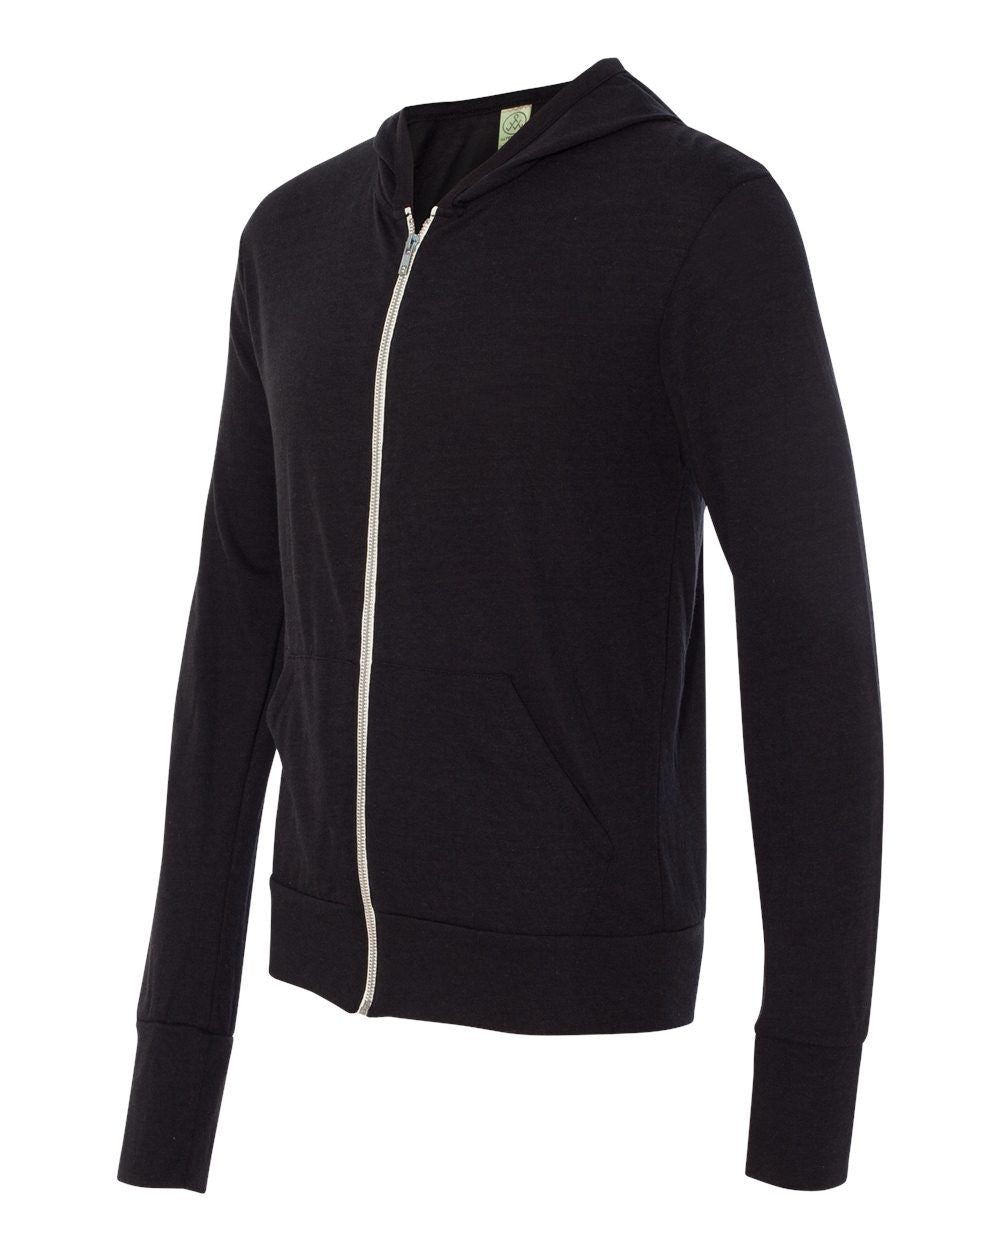 1970e1-Eco-Jersey Hooded Full-Zip